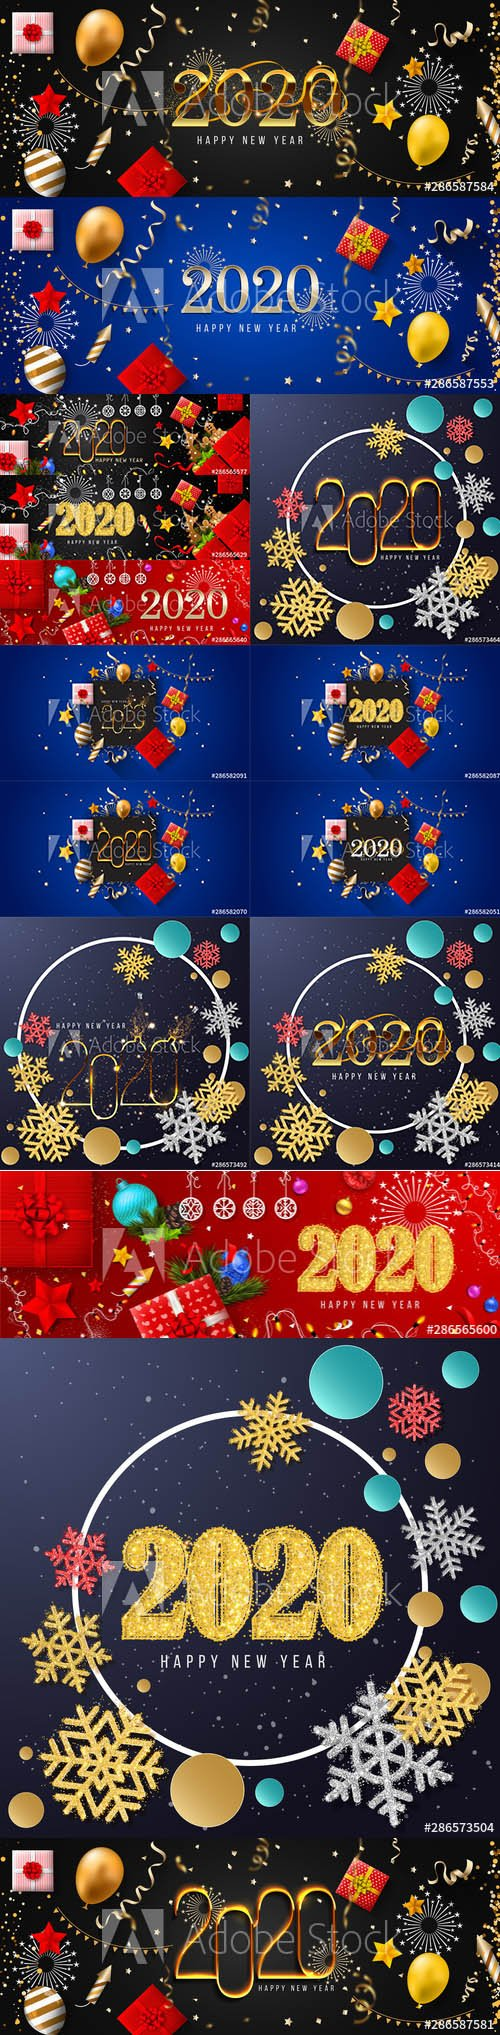 2020 Happy New Year Greeting Card and New Year AI Background vol.6